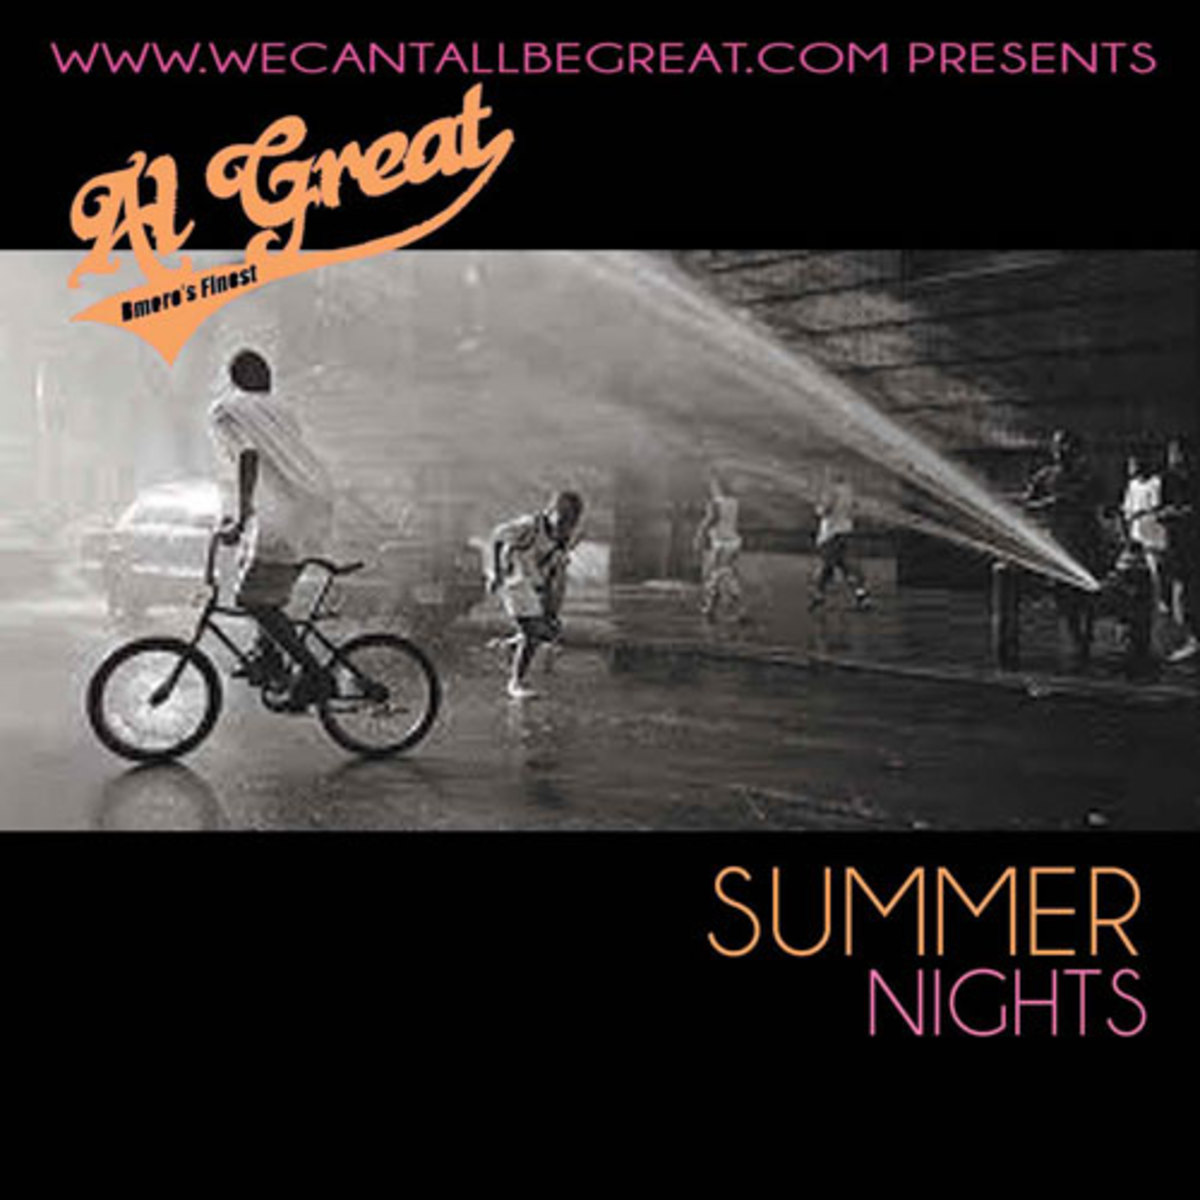 algreat-summernights.jpg